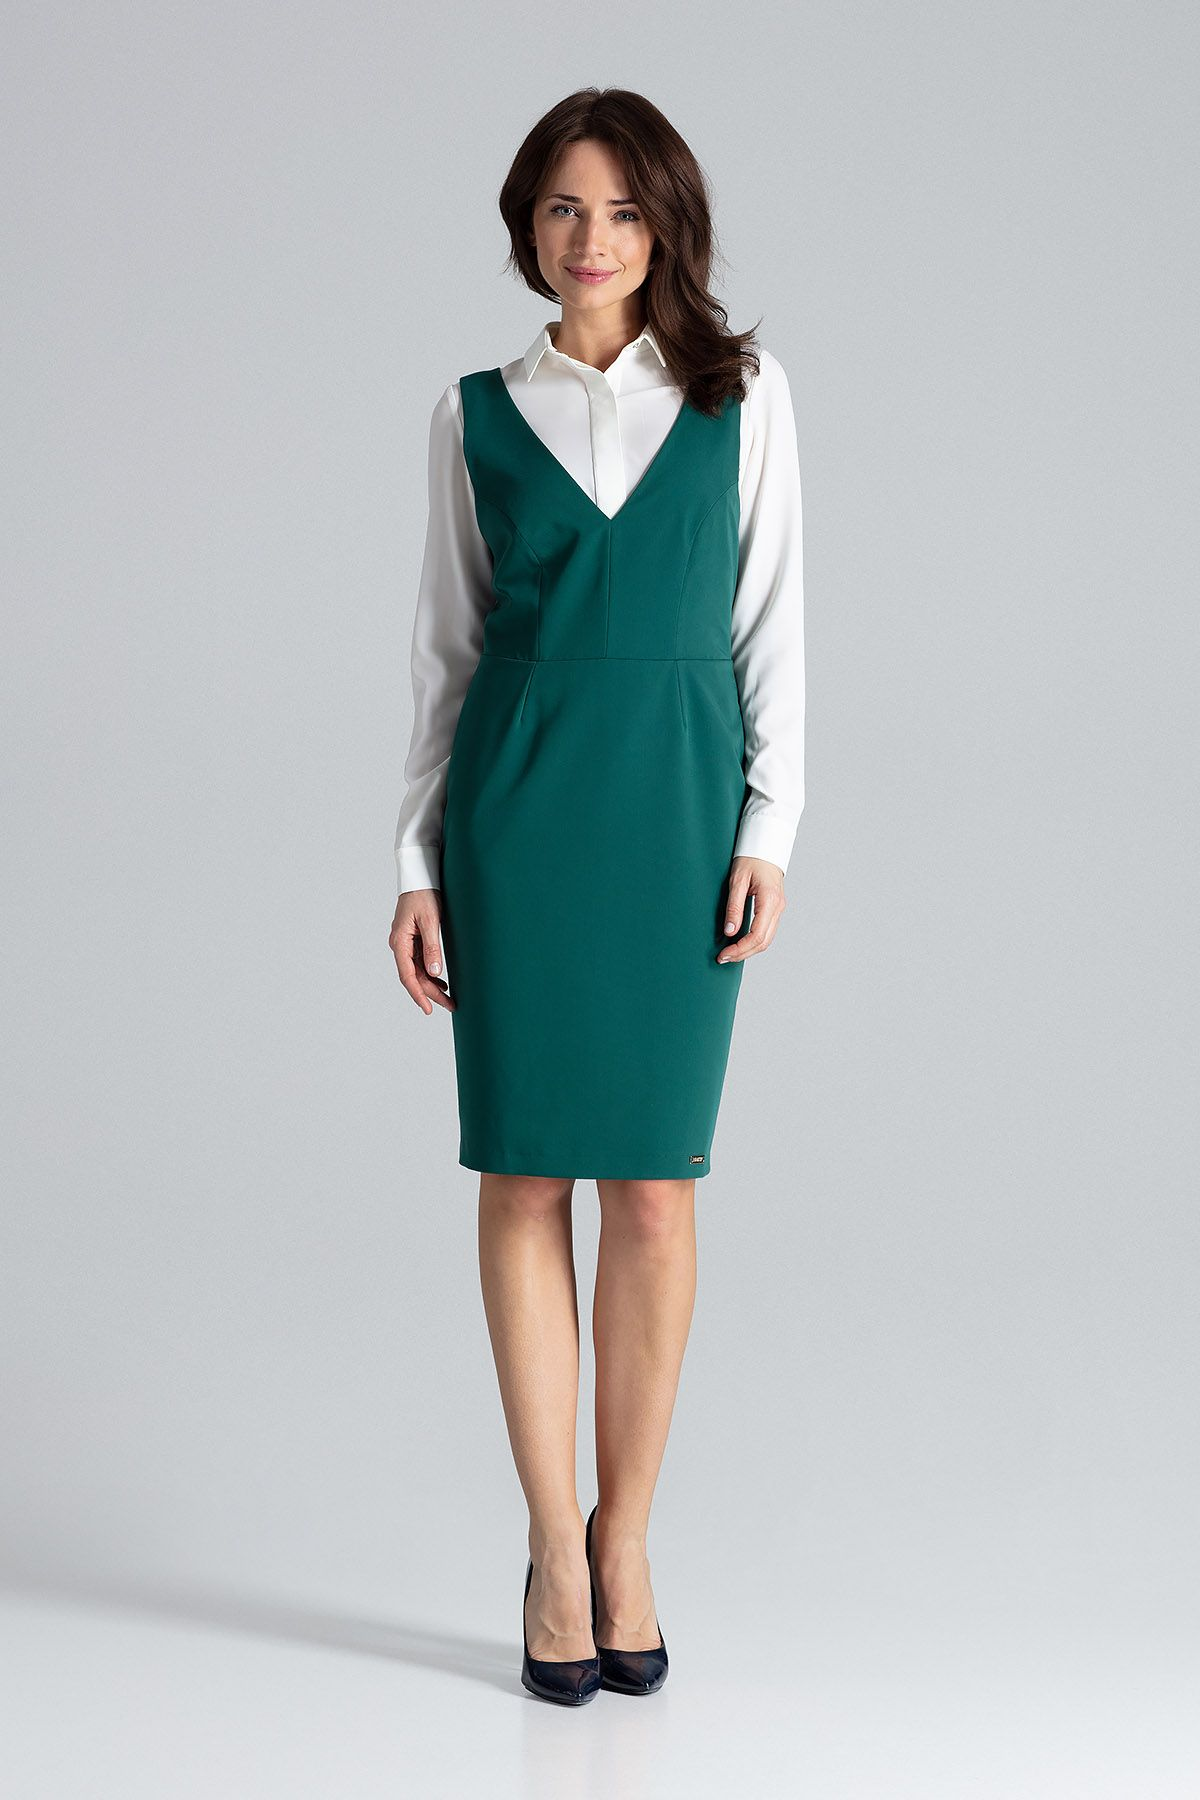 Sleeveless Dress With Suspenders At The Back